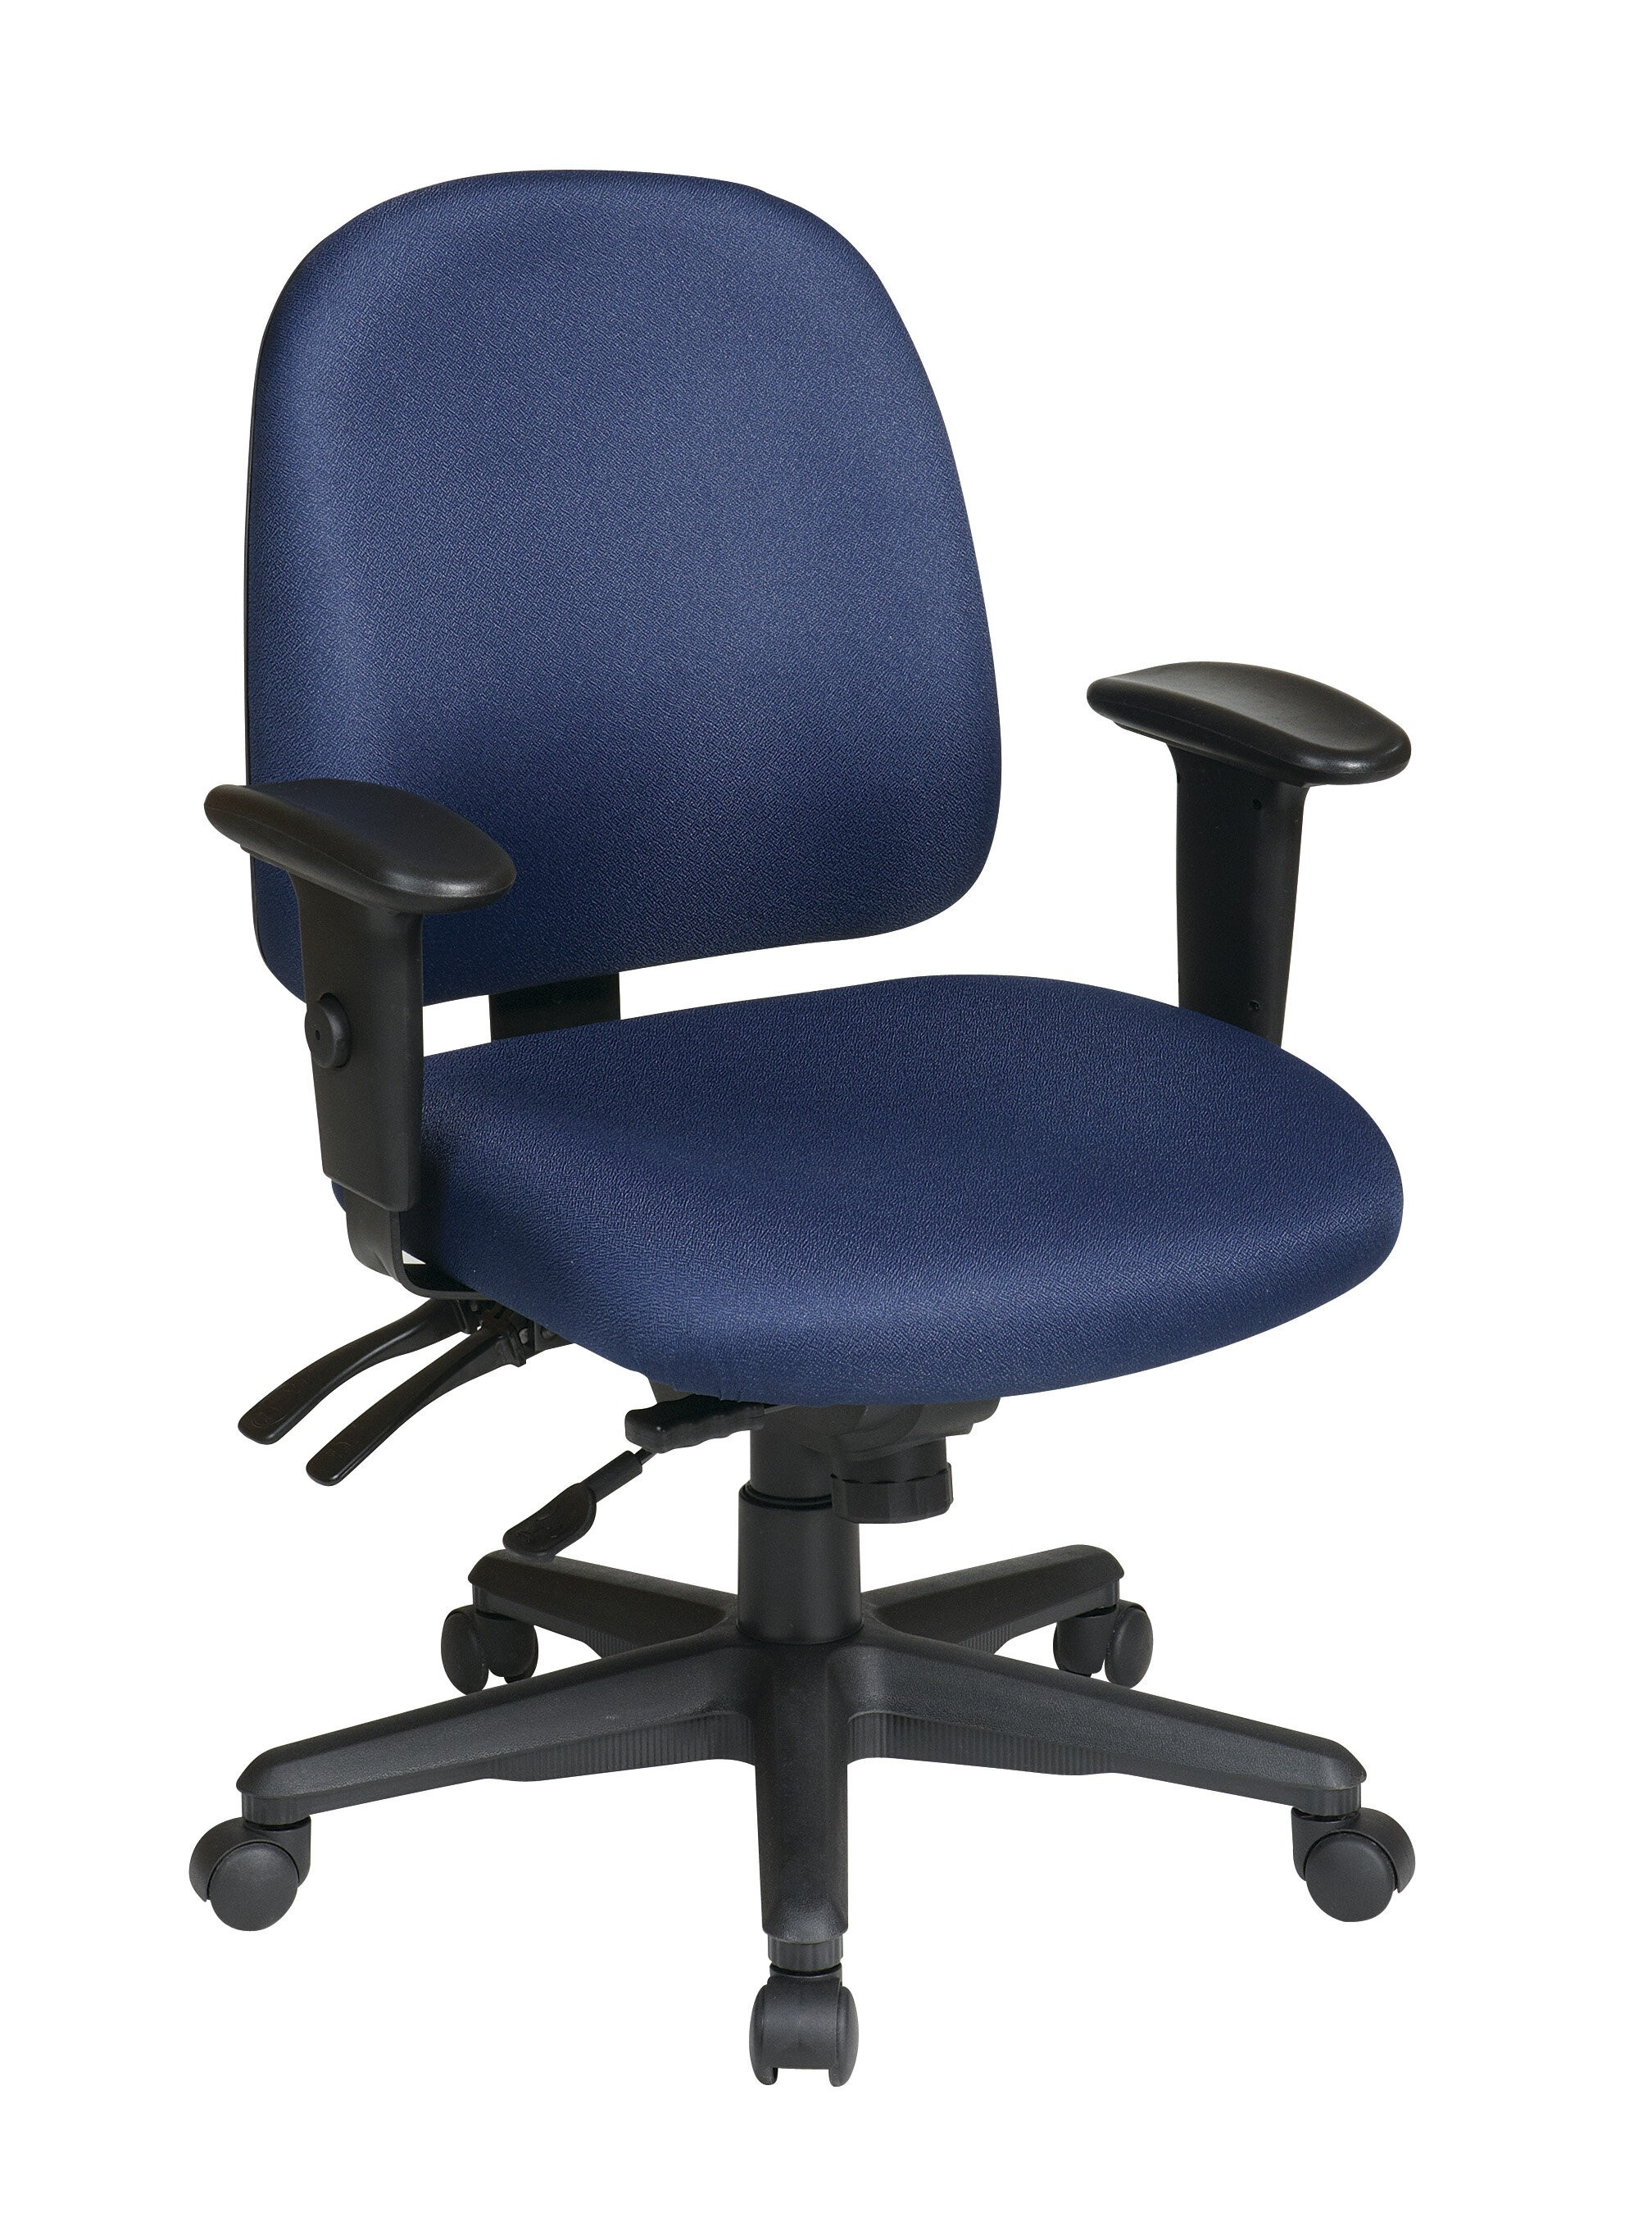 Downing task chairs